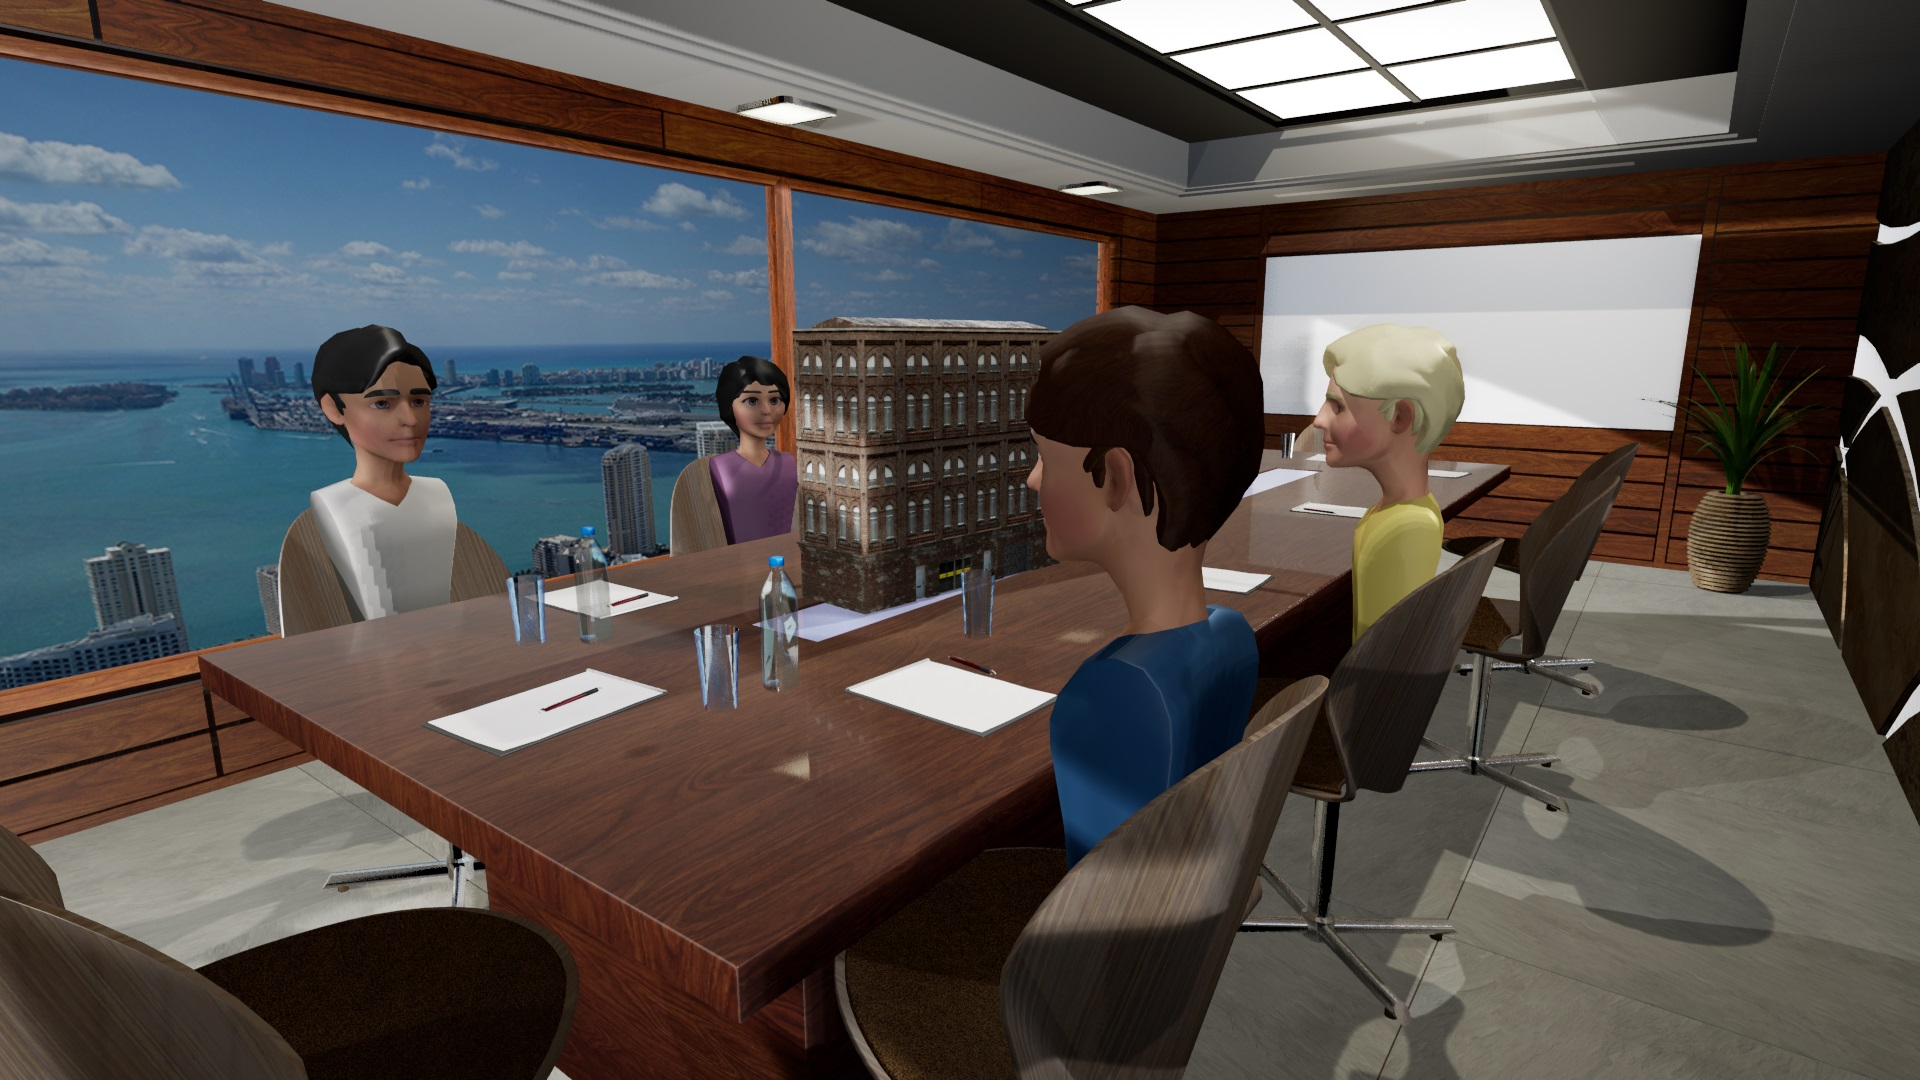 How VR collaboration software can improve your business meetings?